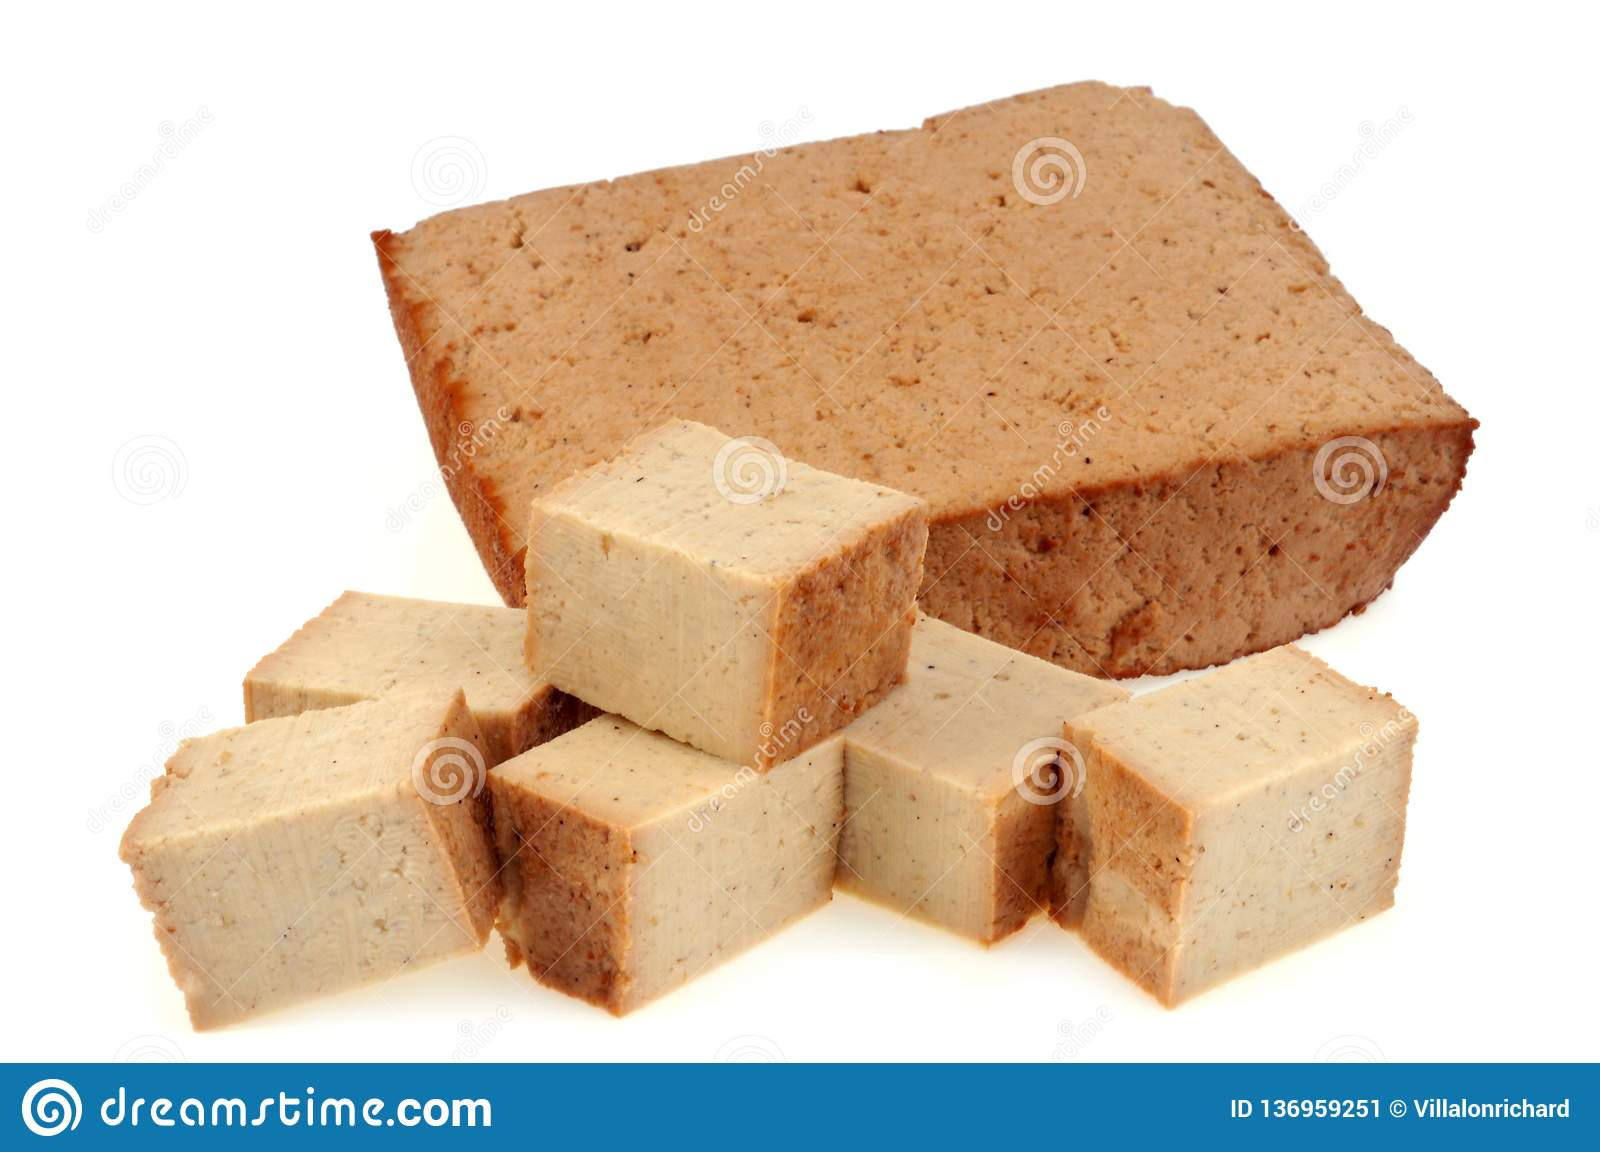 Tofu cut into pieces on white background